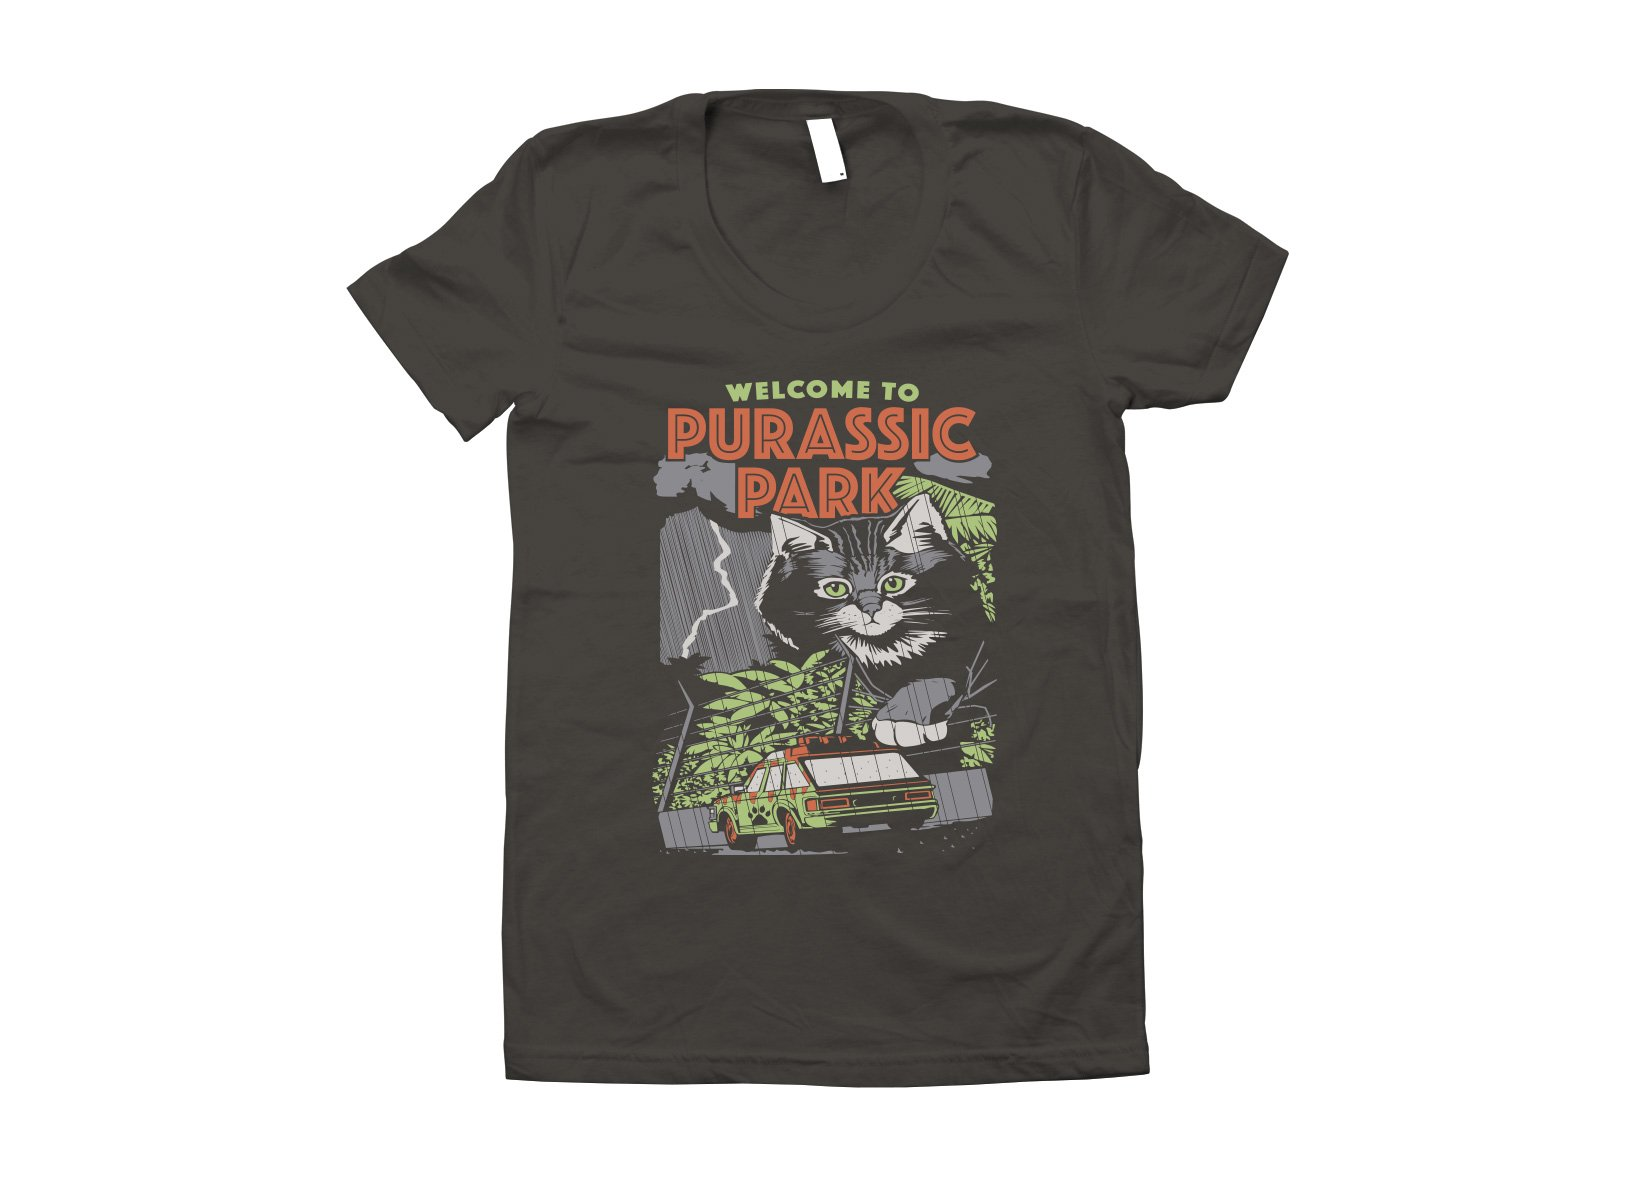 Purassic Park on Juniors T-Shirt